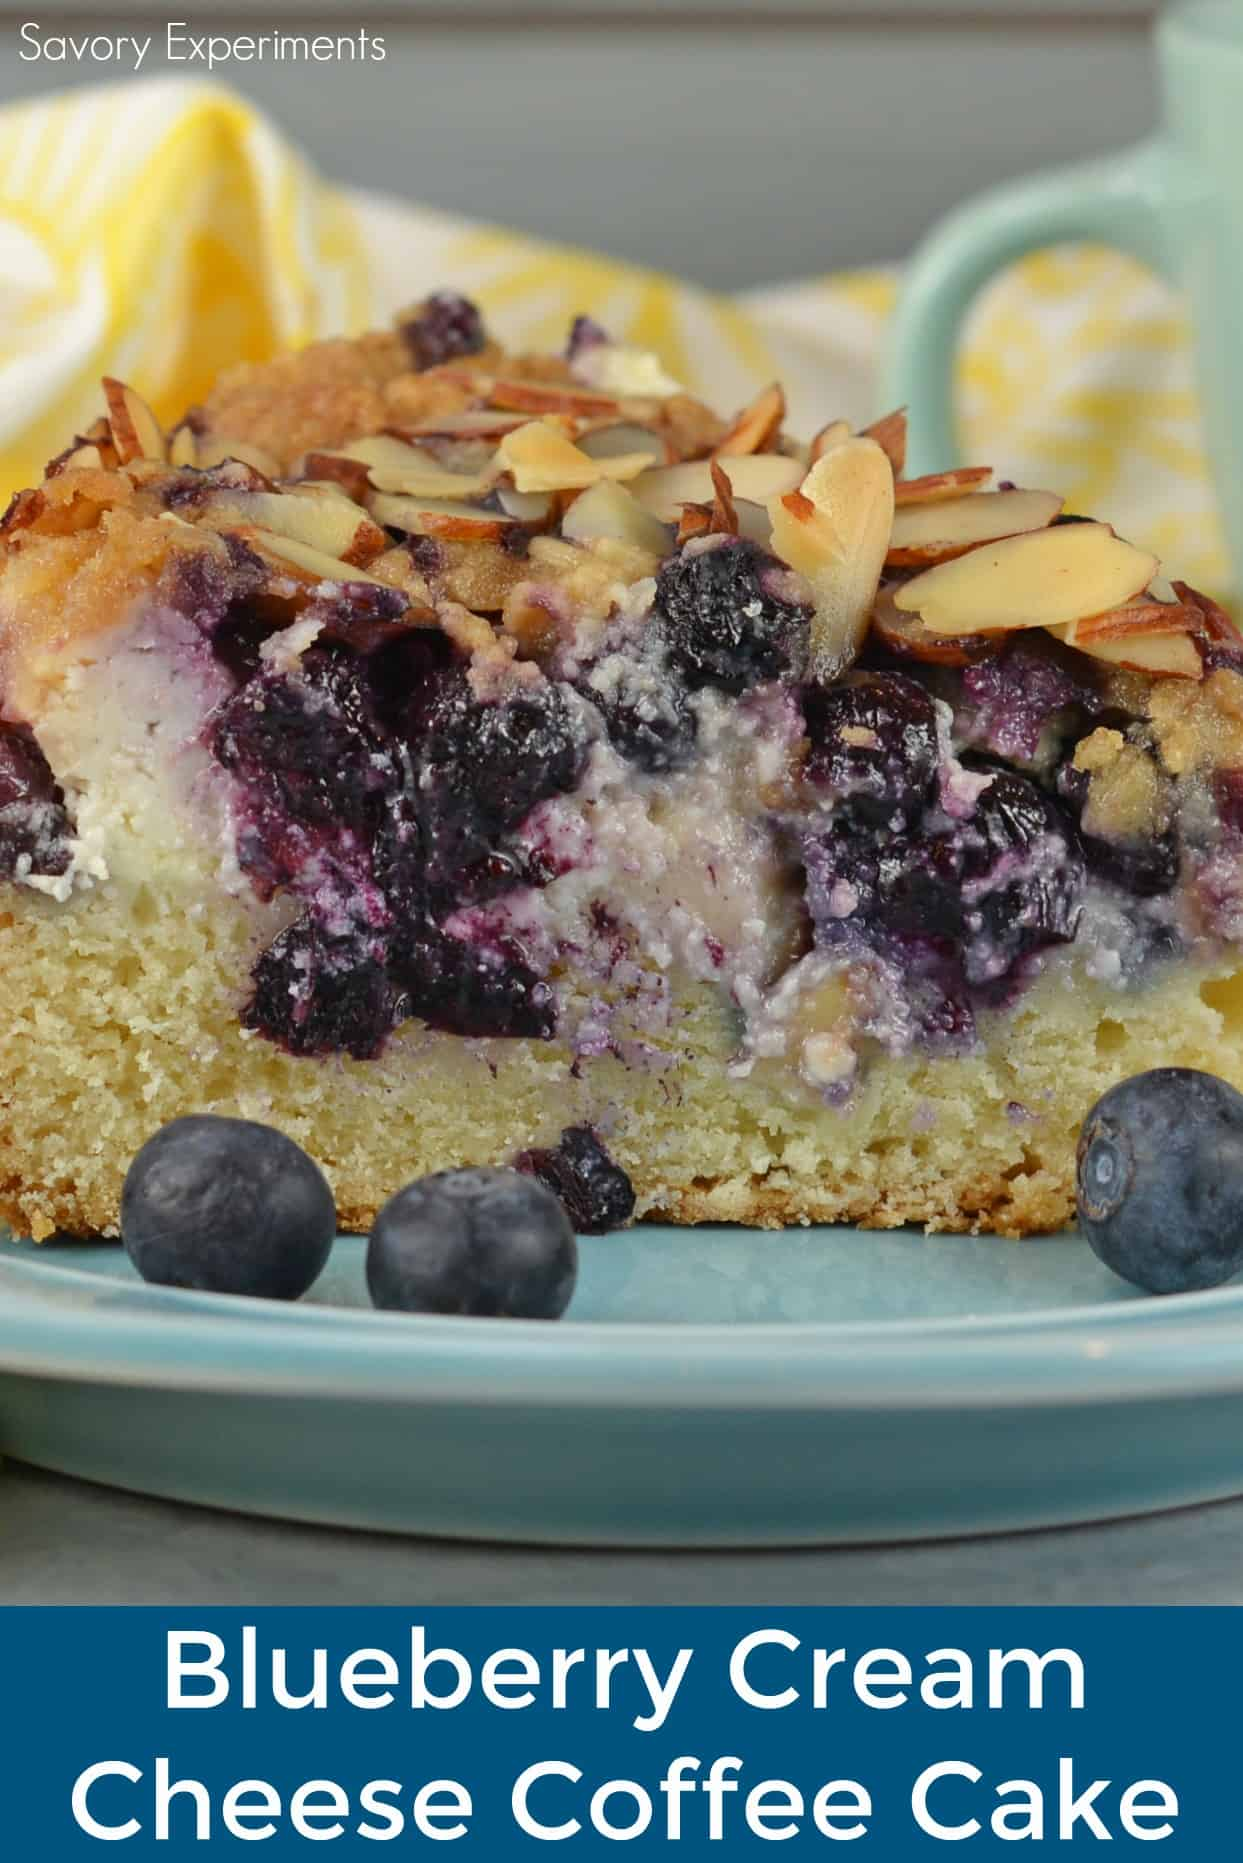 Blueberry Cream Cheese Coffee Cake Savory Experiments